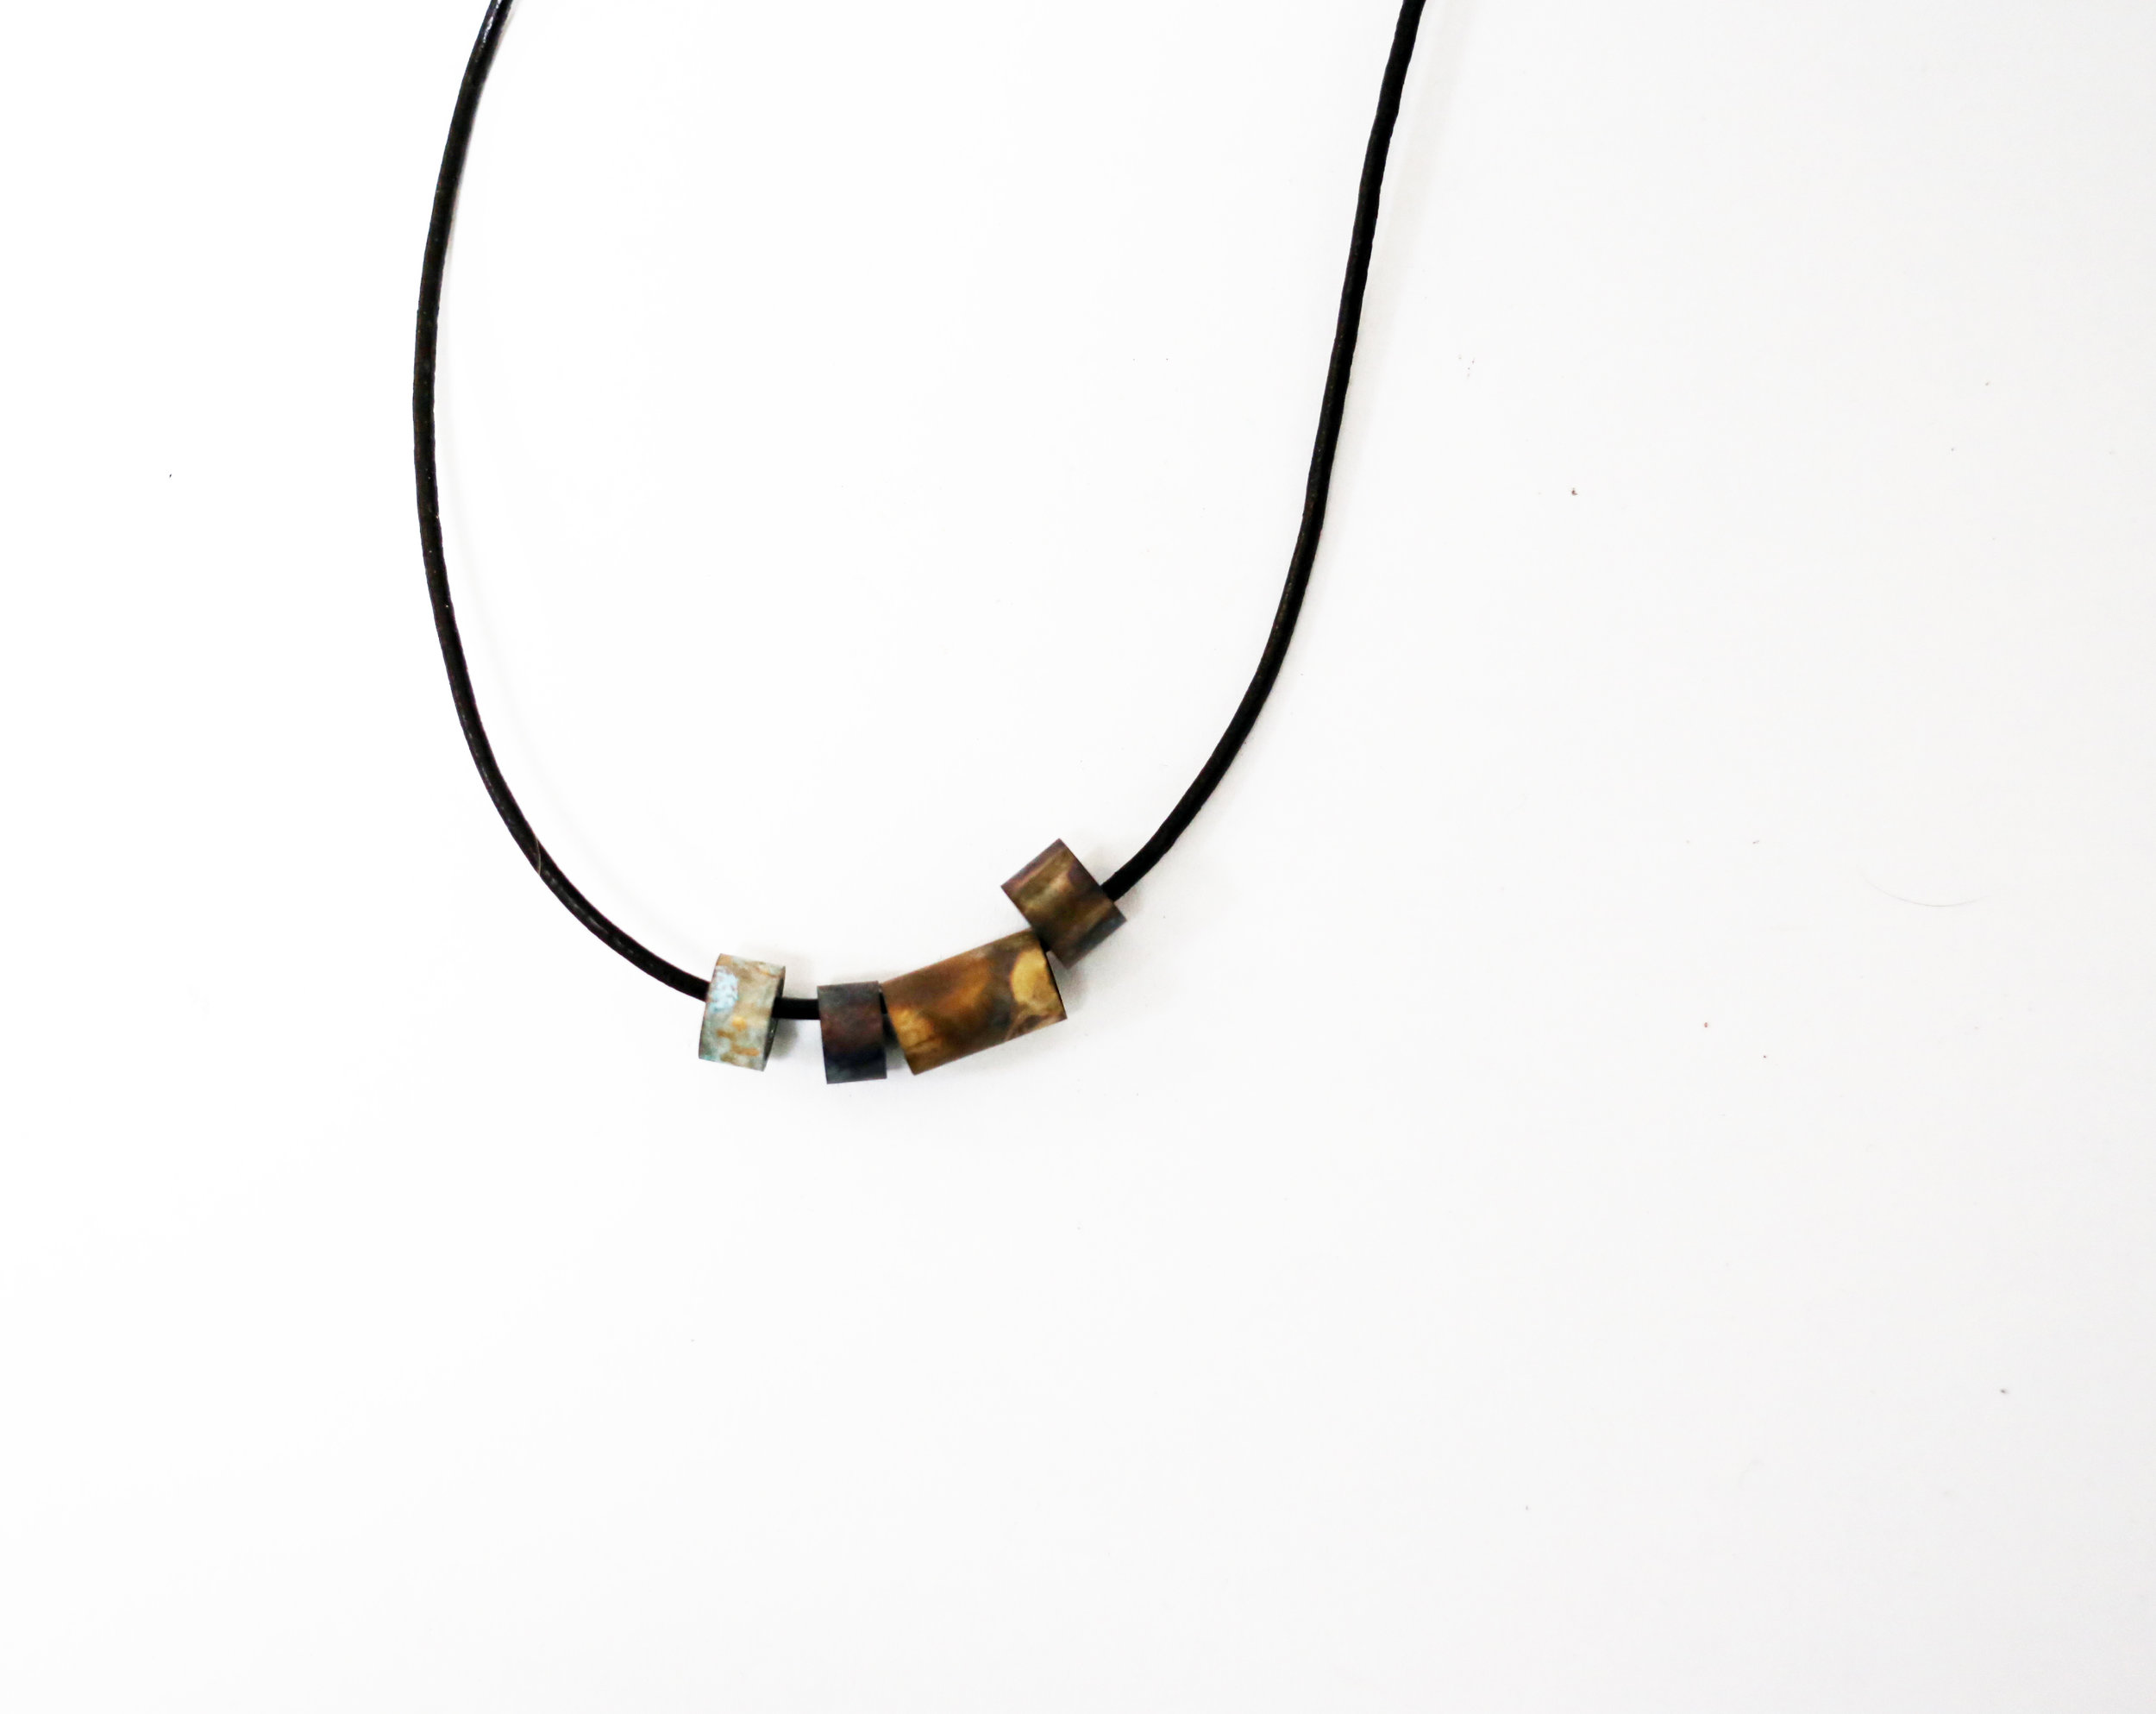 Brass, Aluminum, Seawater patina, Leather cord